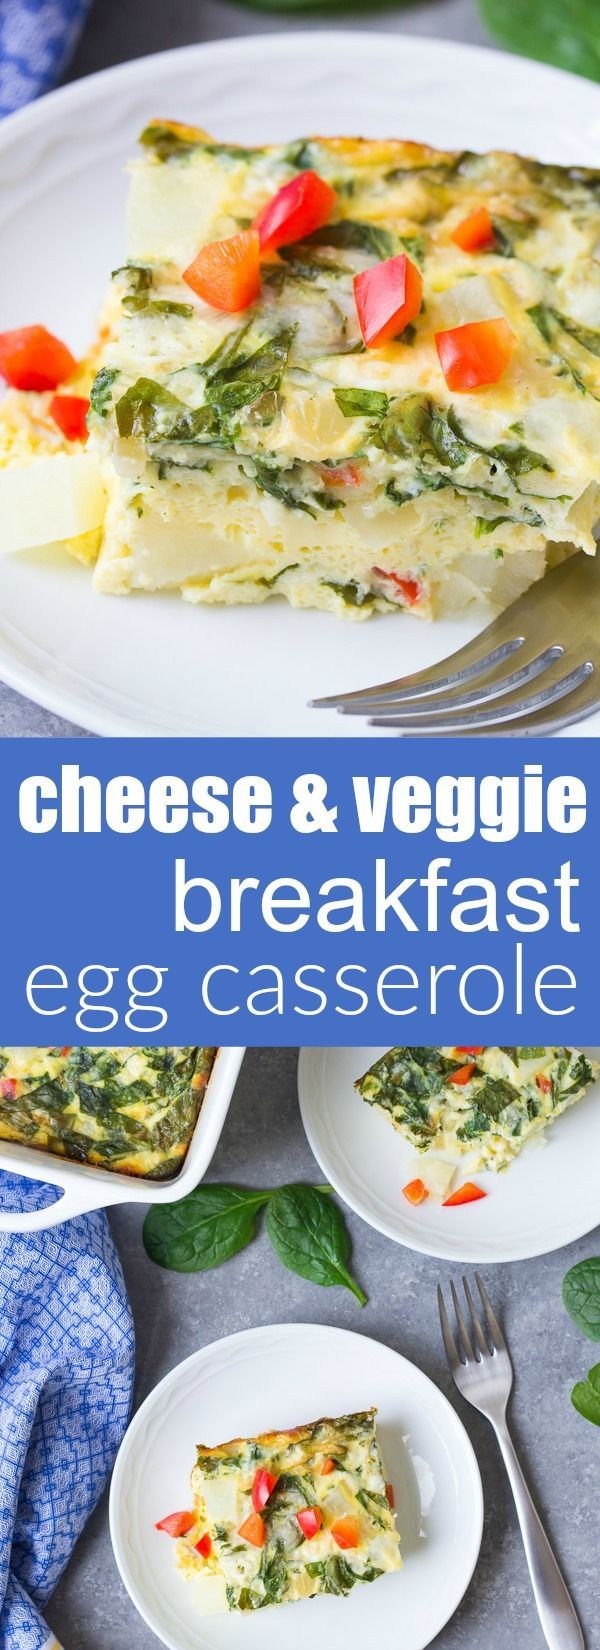 A hearty vegetarian breakfast casserole that's perfect for brunch! This Potato, Spinach and Cheese Egg Casserole is an easy make ahead breakfast. With how to recipe video!   www.kristineskitchenblog.com